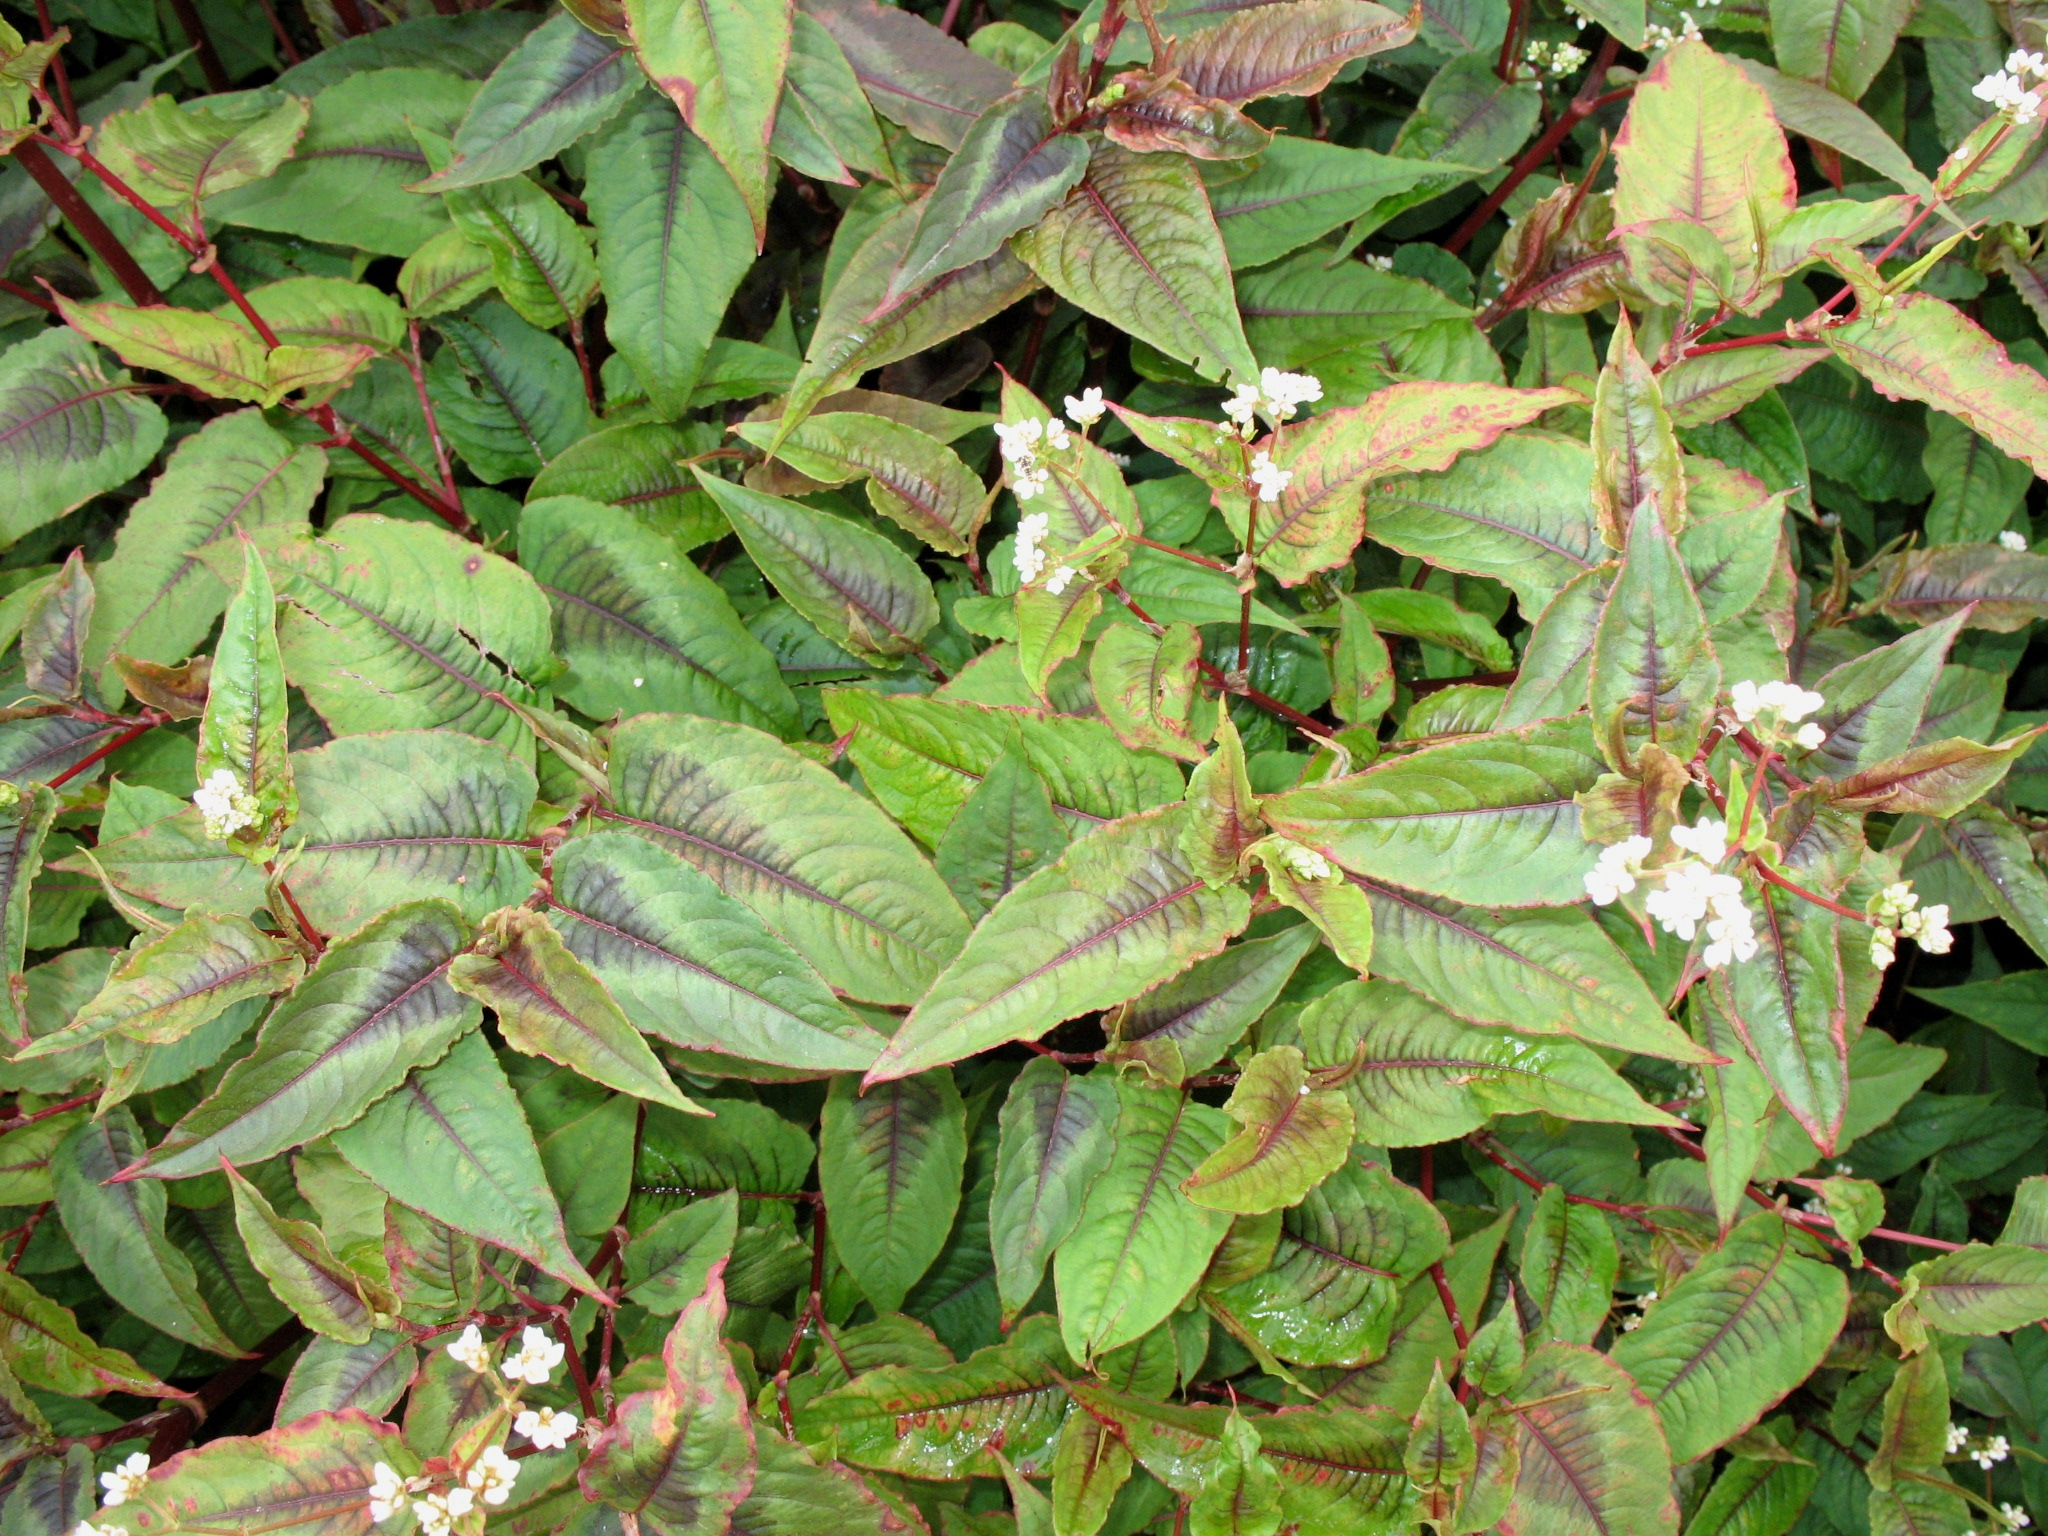 Persicaria microcephala 'Red Dragon'  / Persicaria microcephala 'Red Dragon'